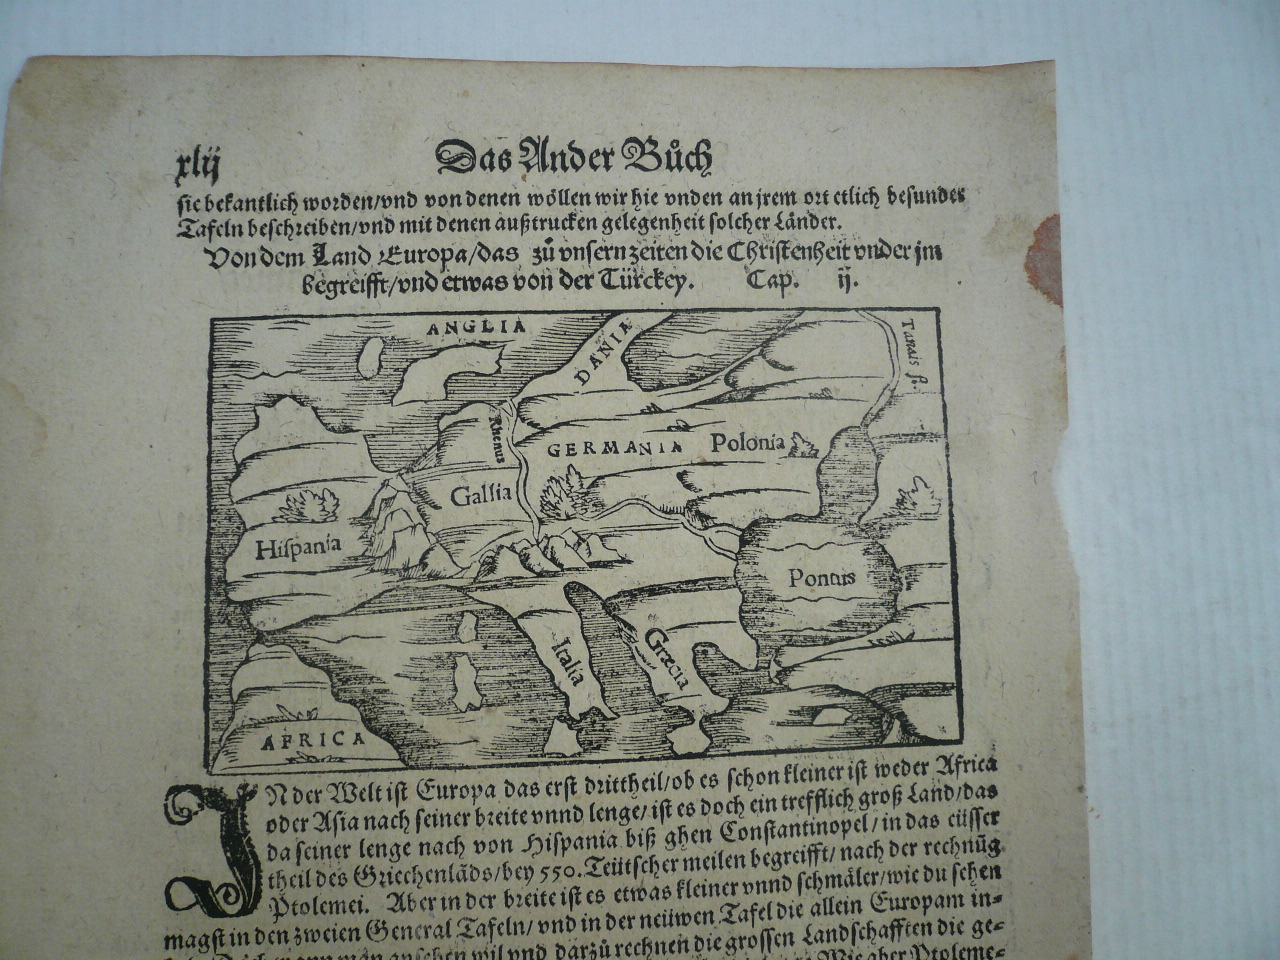 Europe, generalmap, Münster S. anno 1570 Woodcut, edited by S. M